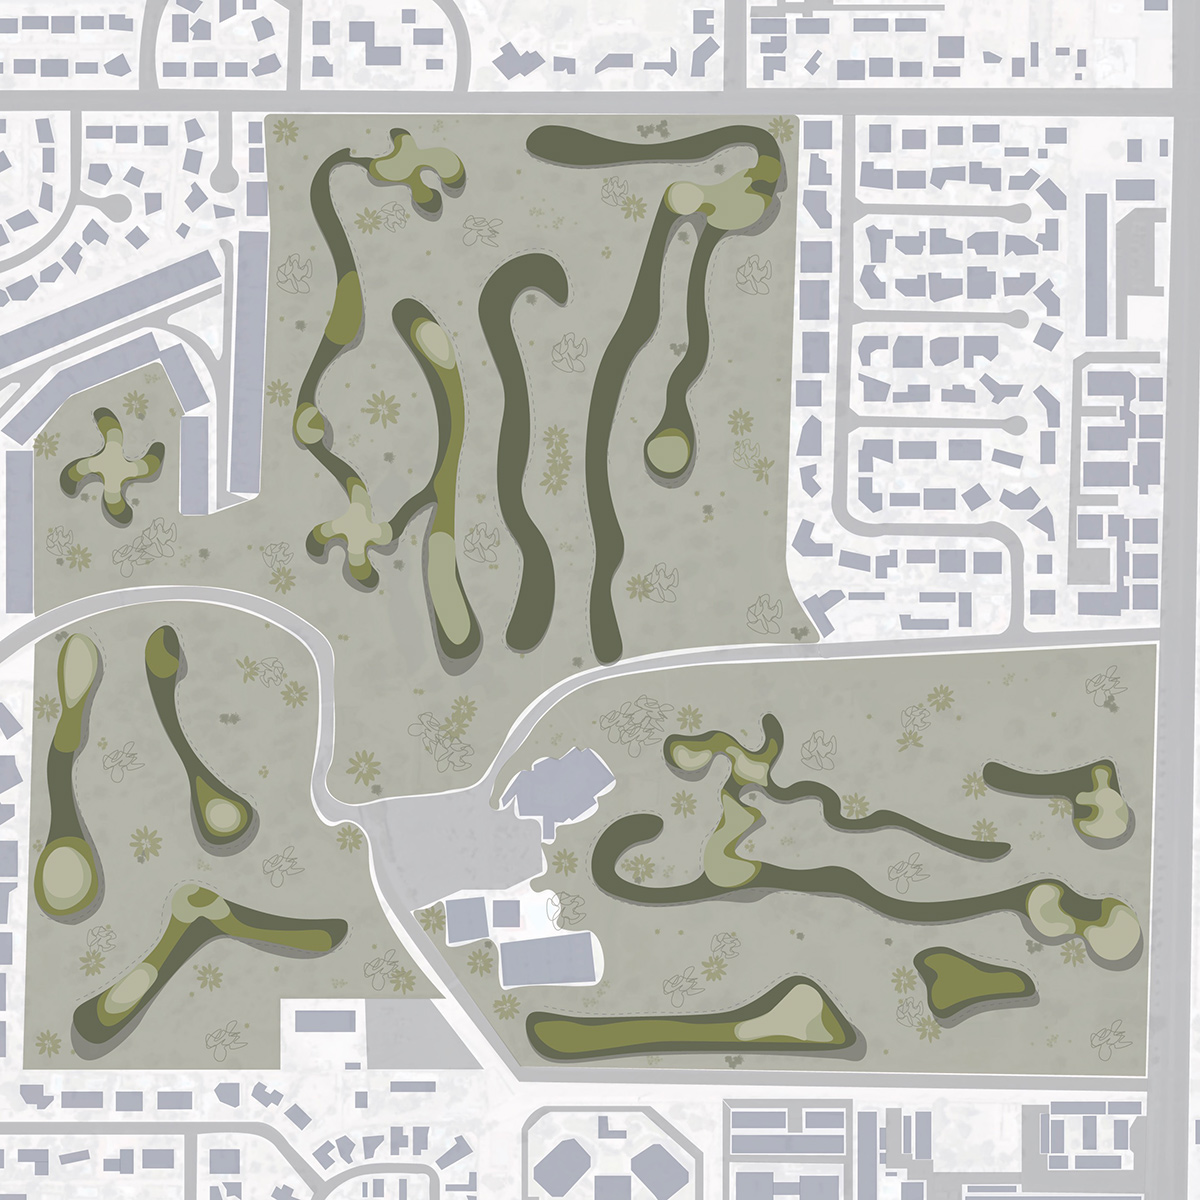 Neighborhood plan of a converting a golf course plan into a housing plan by student Lauren Bennett